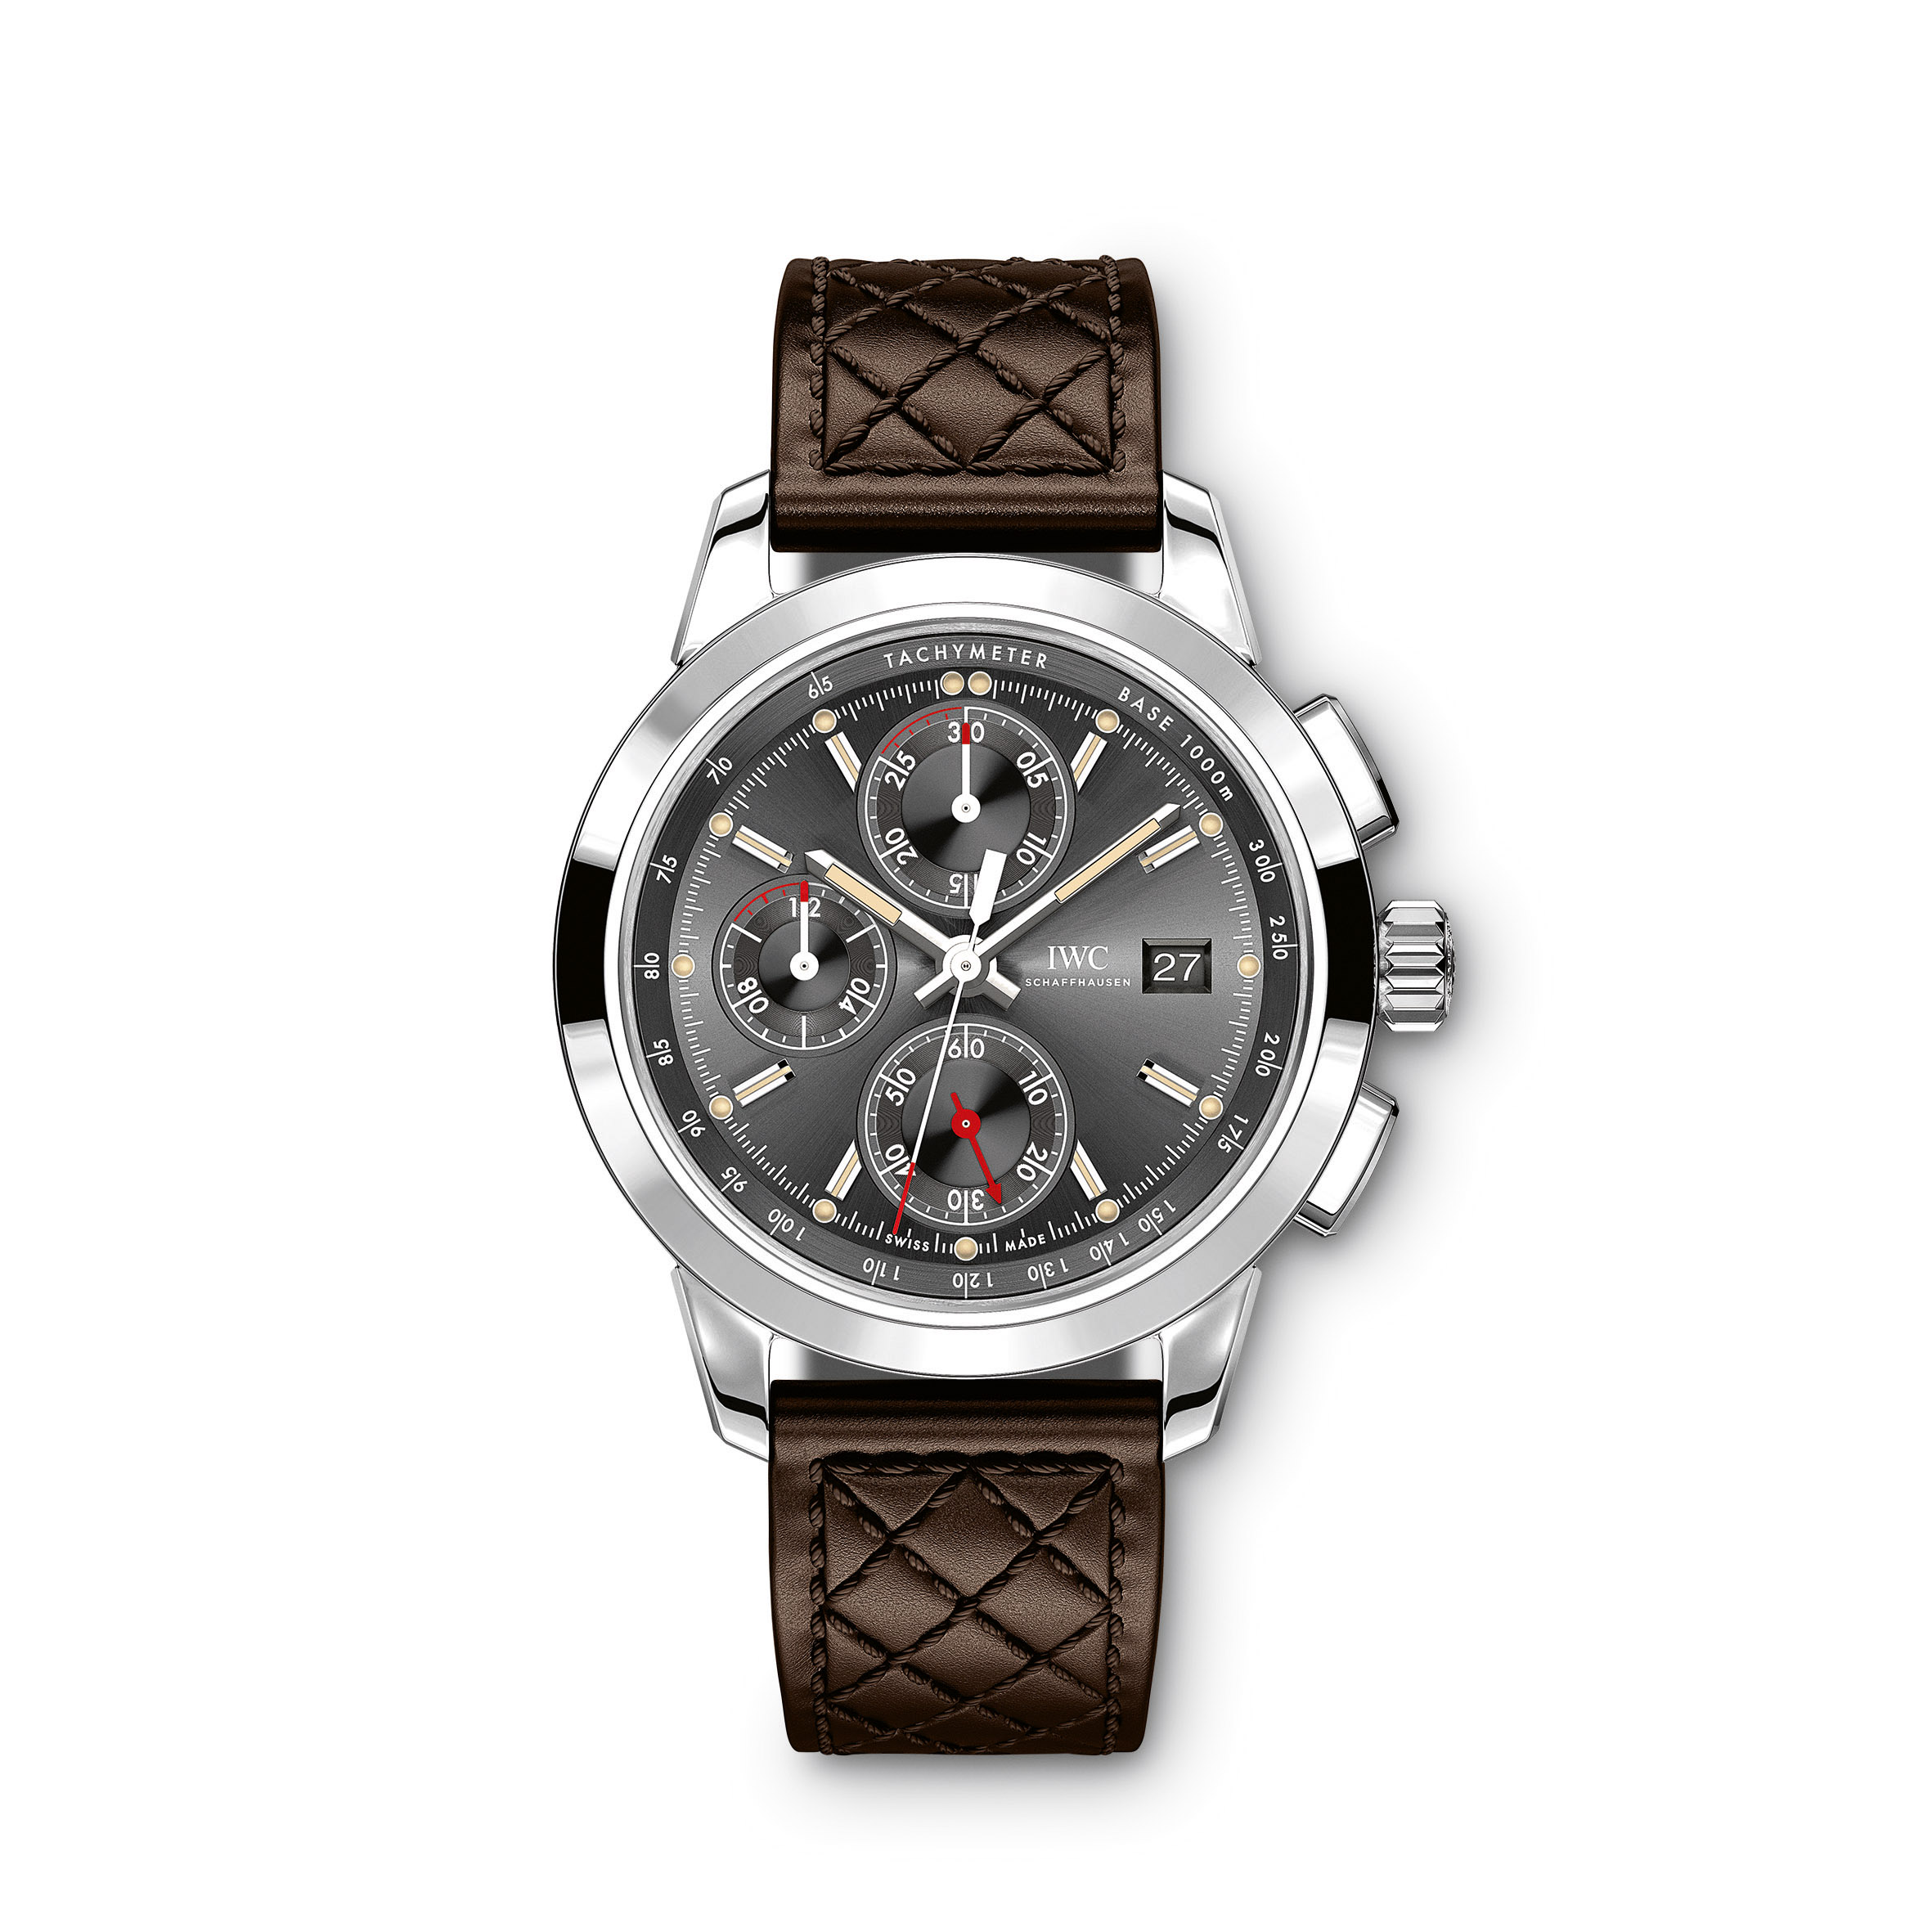 """HANDOUT – The Ingenieur Chronograph Edition """"Rudolf Caracciola"""" (Ref. IW380702) from IWC Schaffhausen features a case in stainless steel, rhodium-plated hands, slate-coloured dial and a luxurious brown calfskin strap. The watch is dedicated to racing driver Rudolf Caracciola, who took three European Drivers' Championship crowns in the 1930s. The dial imitates the instrument look of the historic racing cars which, at the height of Caracciola's career, took him from one victory to the next. The timepiece is limited to 750 pieces. (PHOTOPRESS/IWC)"""